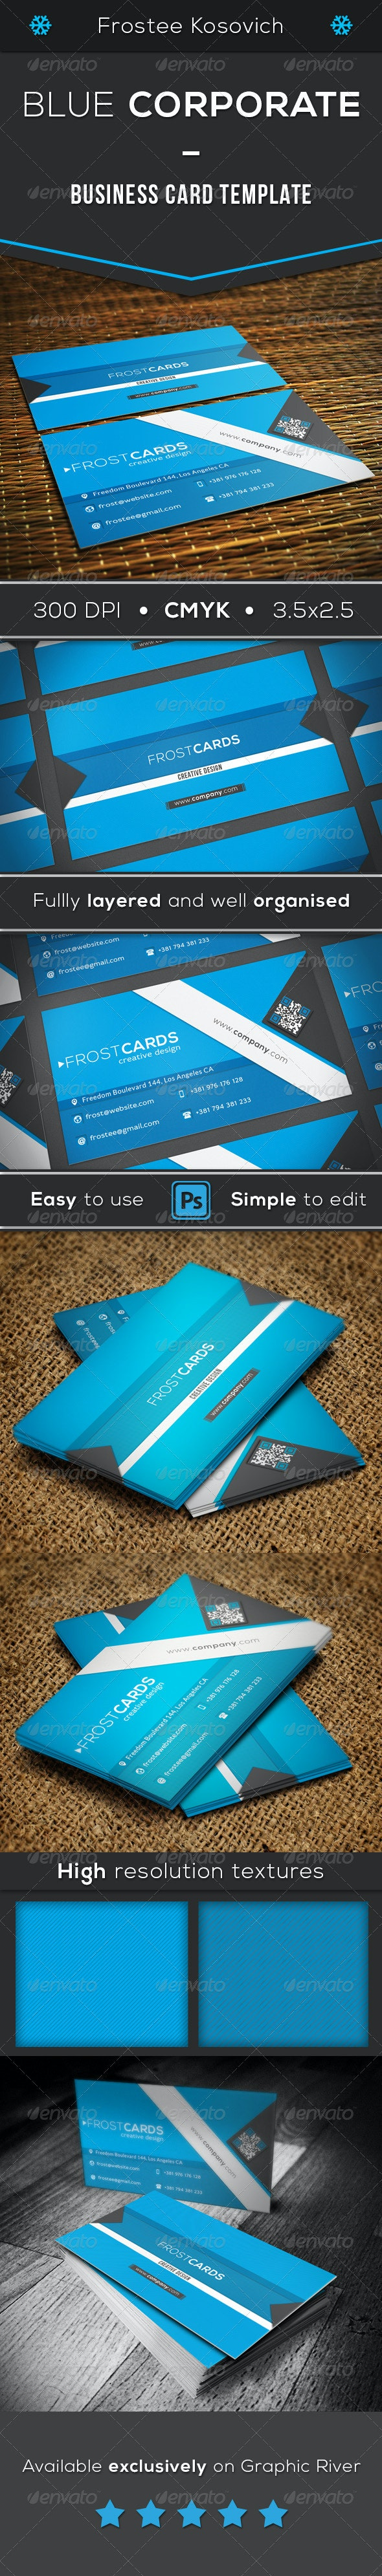 Blue Corporate Business Card Template - Corporate Business Cards